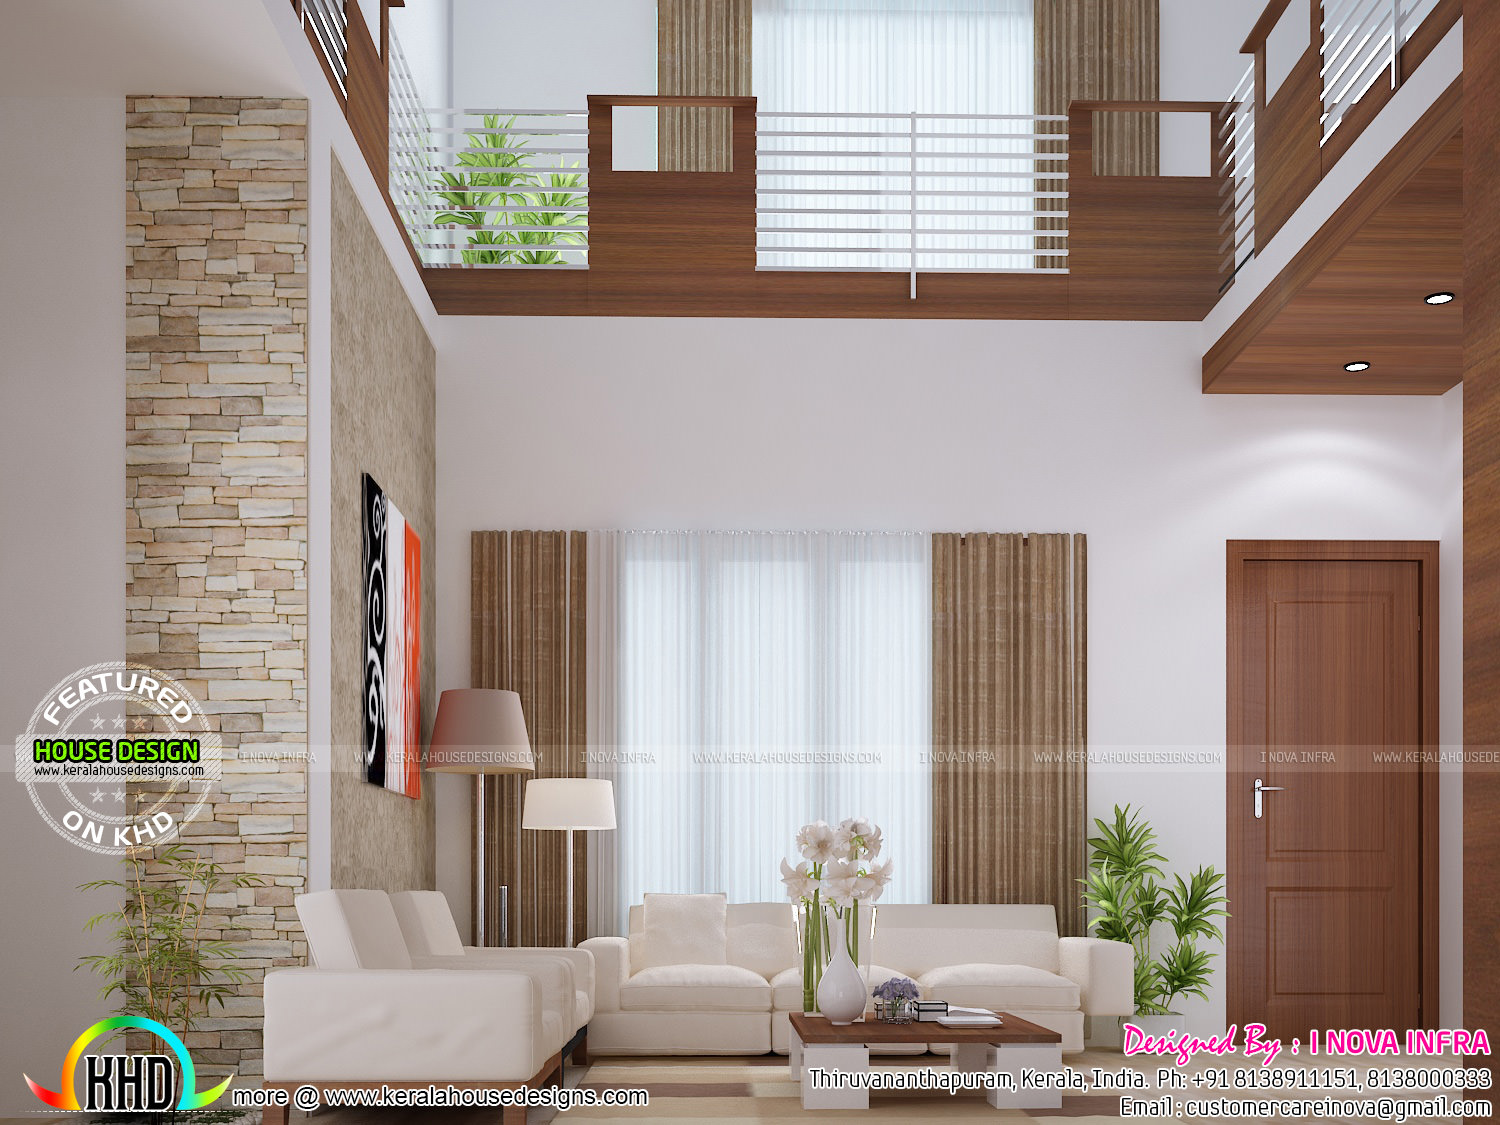 Balcony dining bedroom and staircase interior kerala for House interior design kerala photos